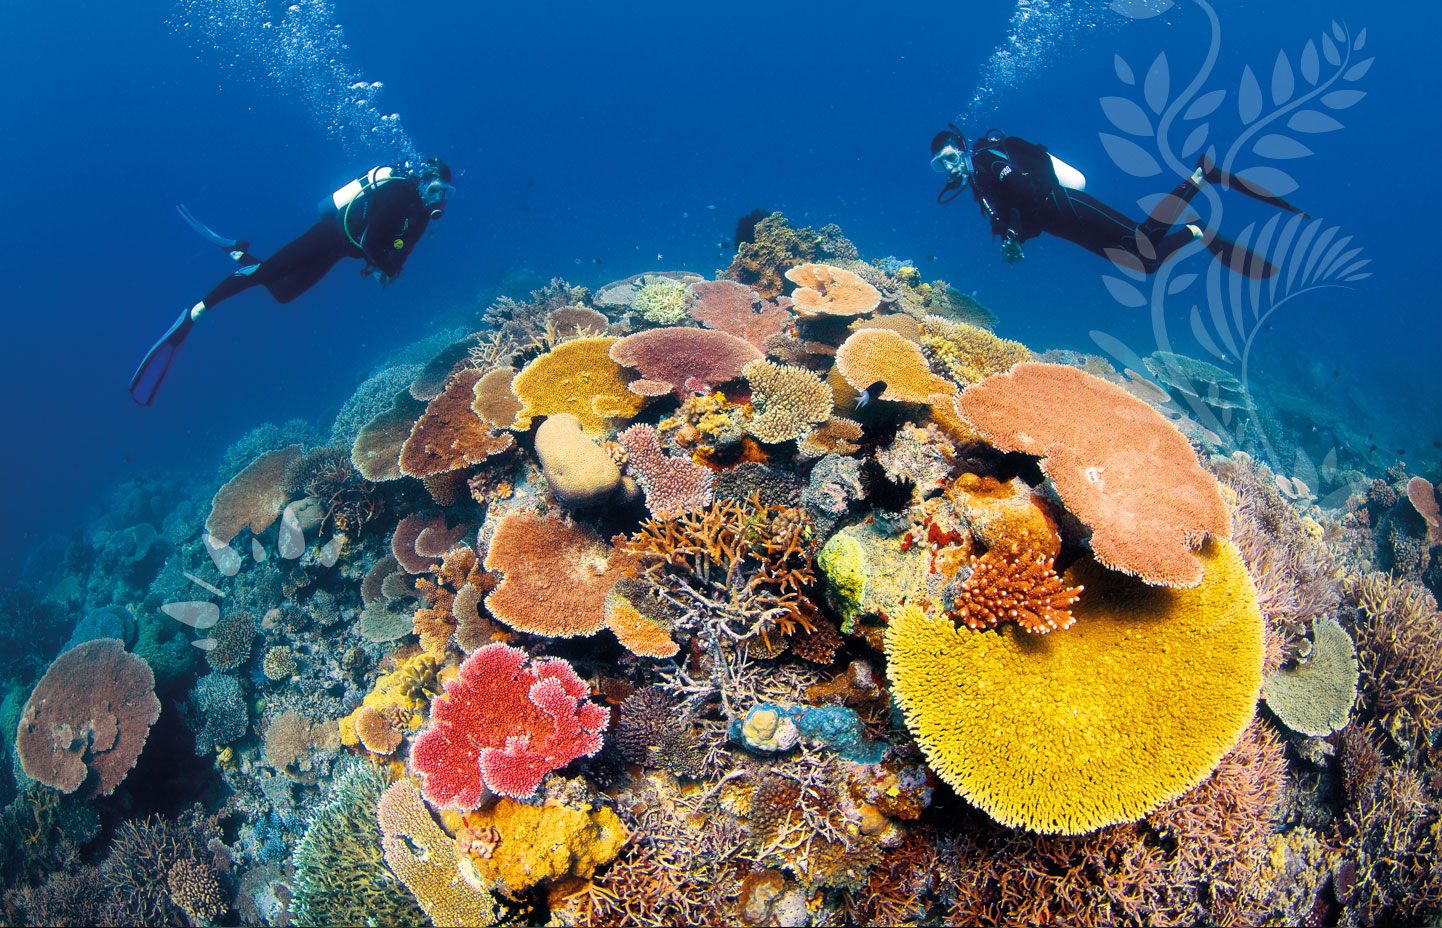 Great barrier reef austrialia luxury places - Best place to dive the great barrier reef ...